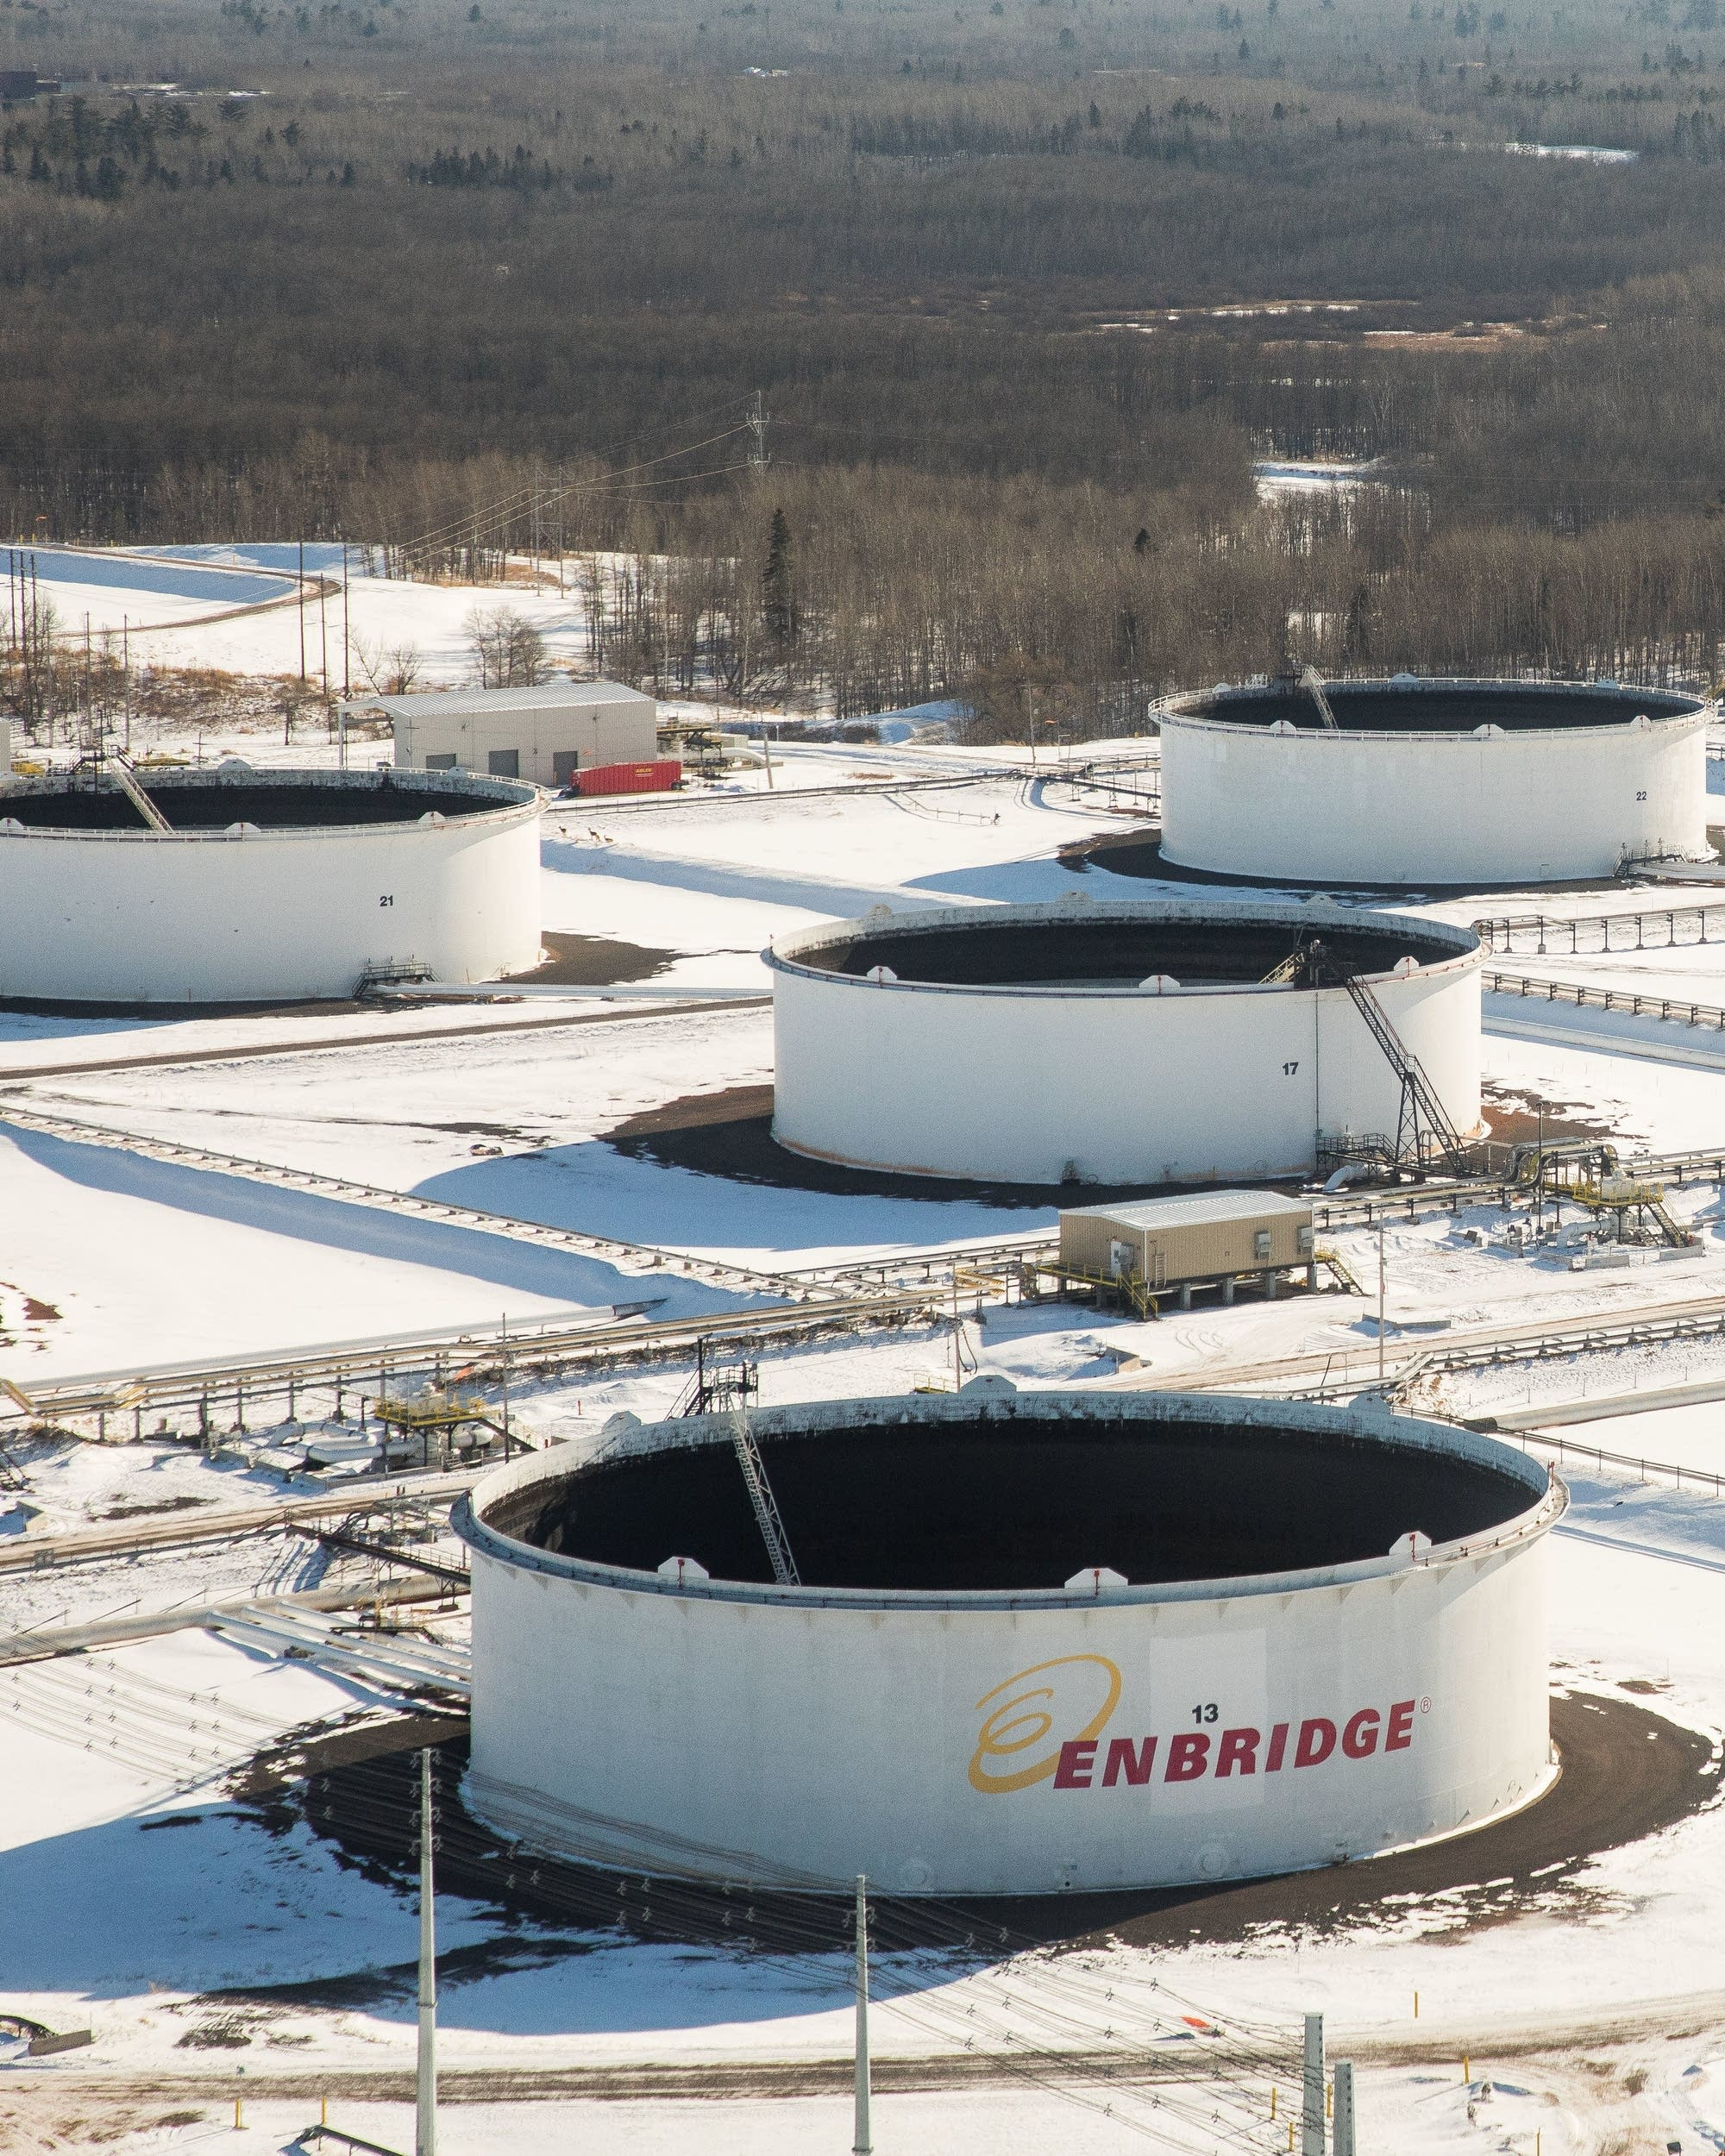 Enbridge proposes another pipeline replacement across Fond